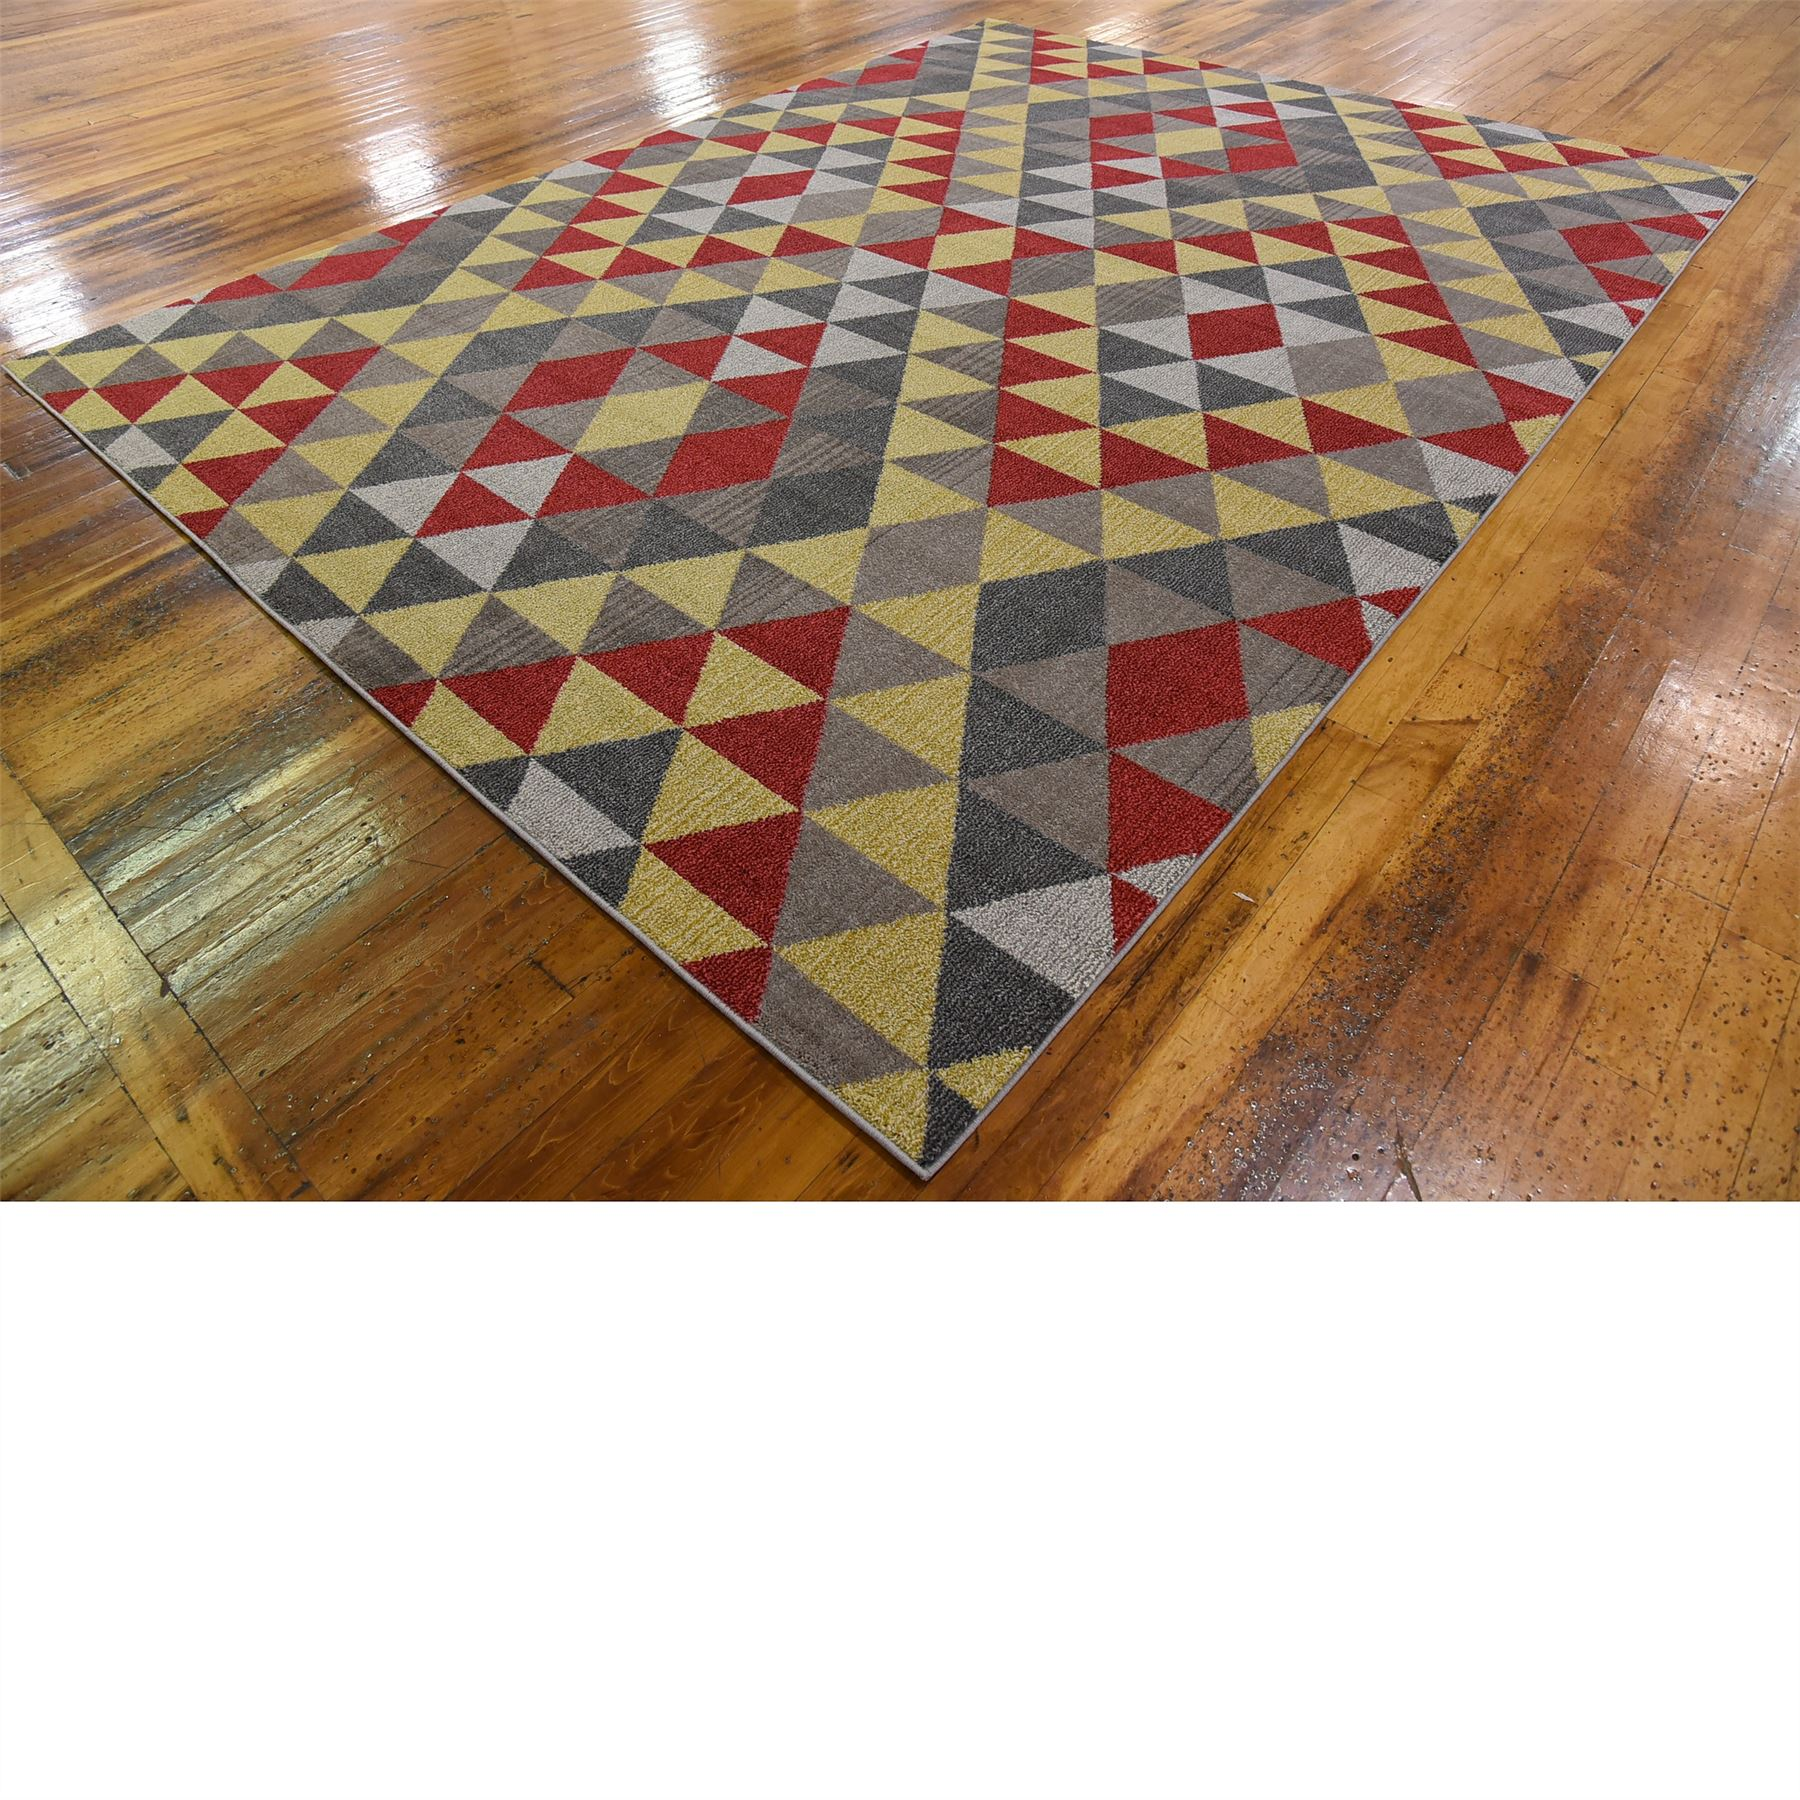 New Rugs Modern Carpets Tribal Area Persian Style Floor